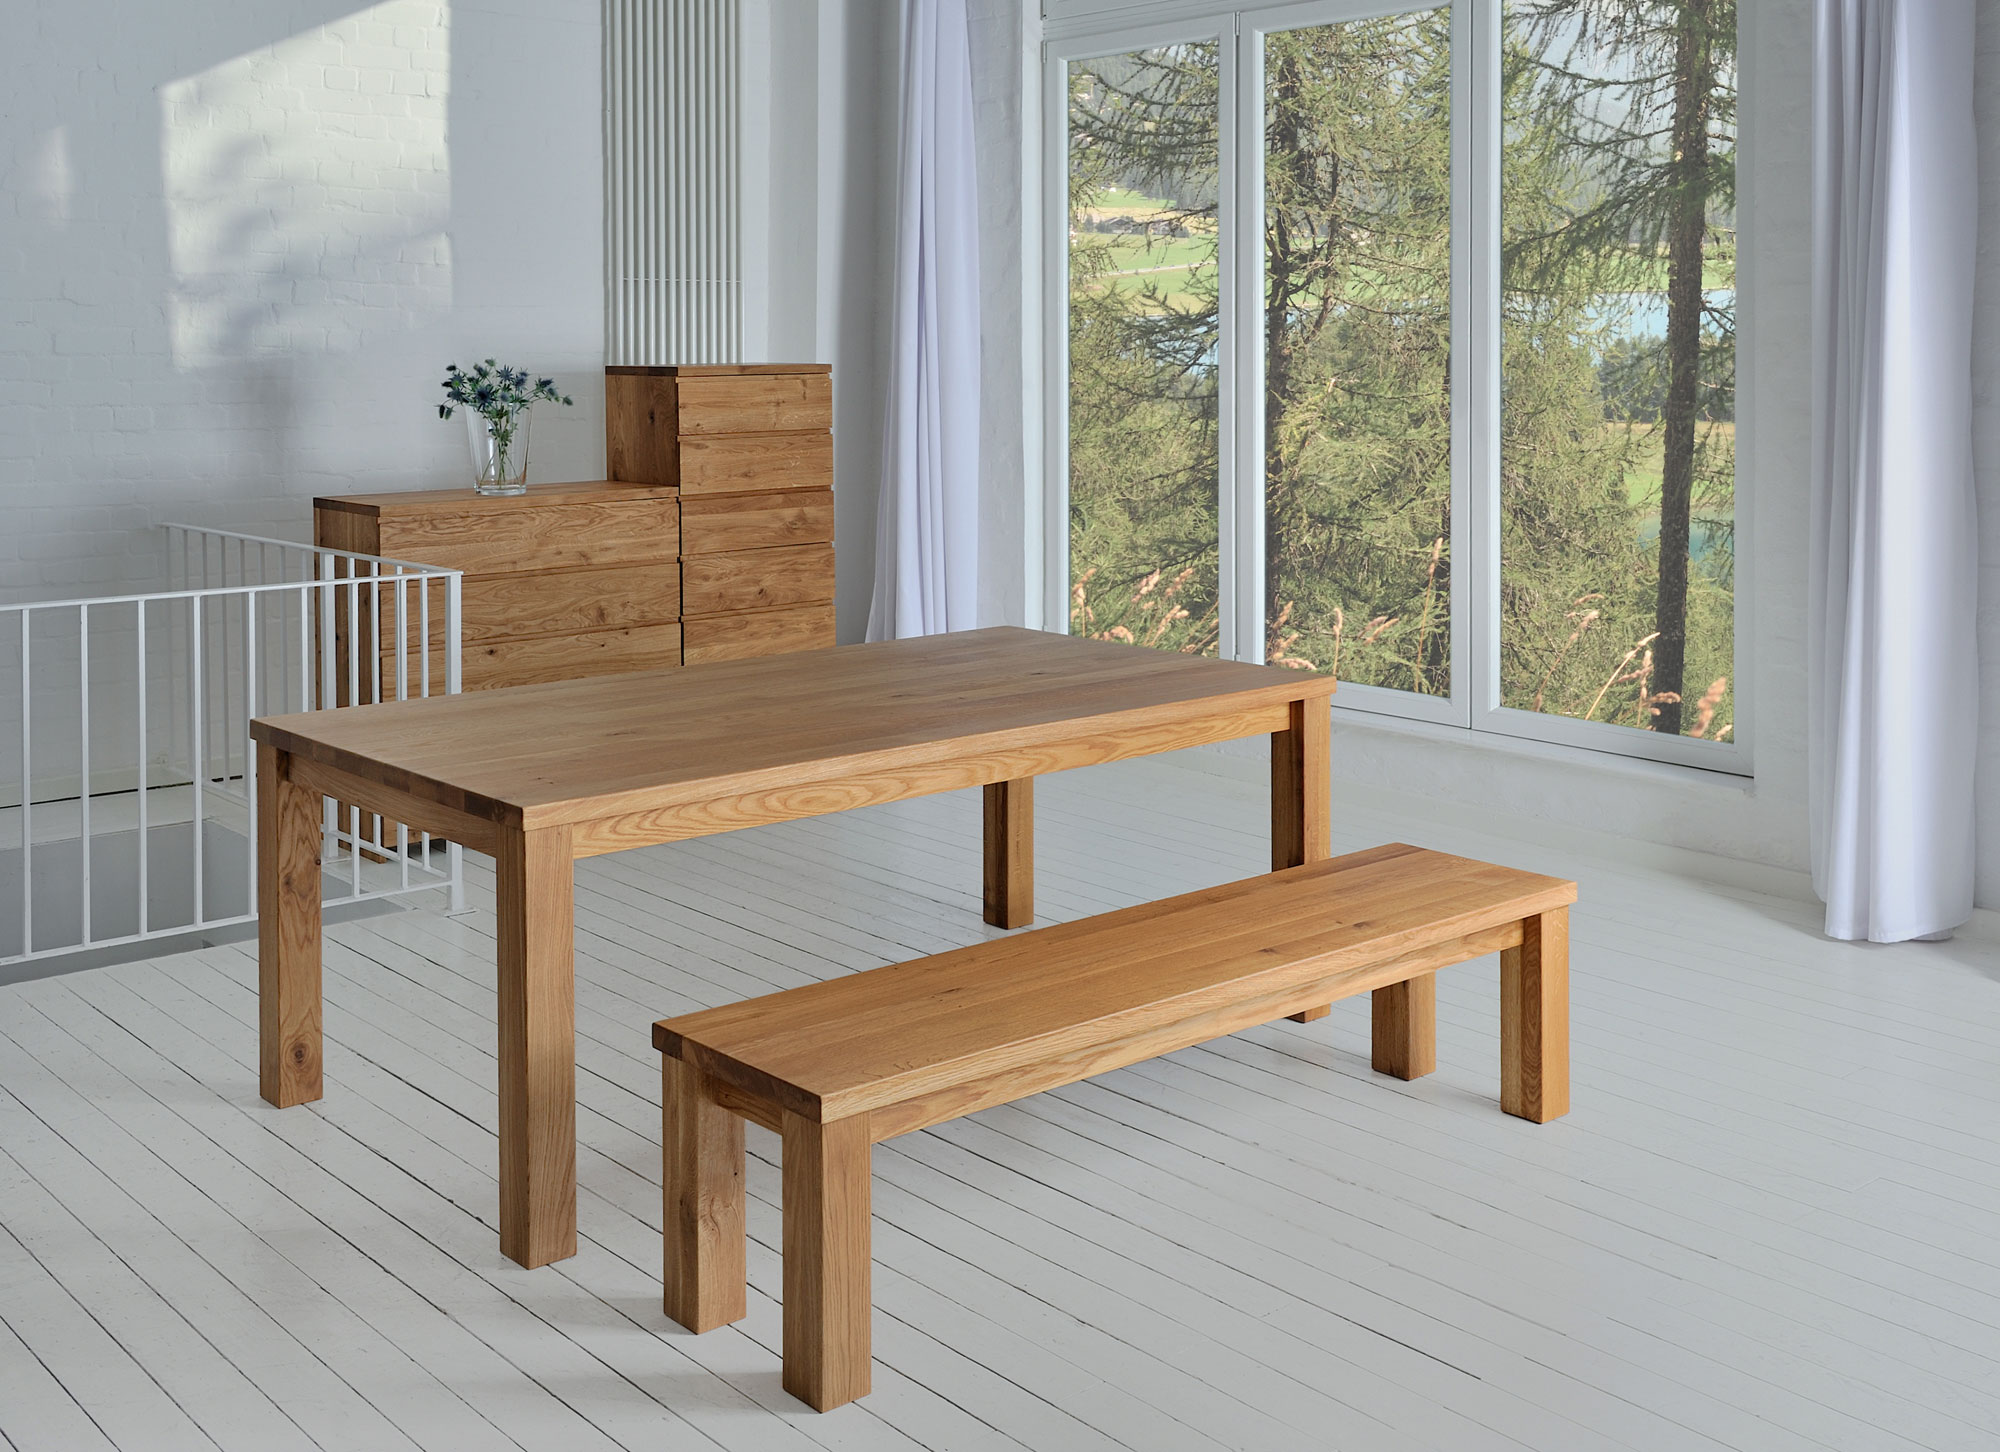 Tailor-Made Wood Bench FORTE 4 4286 custom made in solid wood by vitamin design